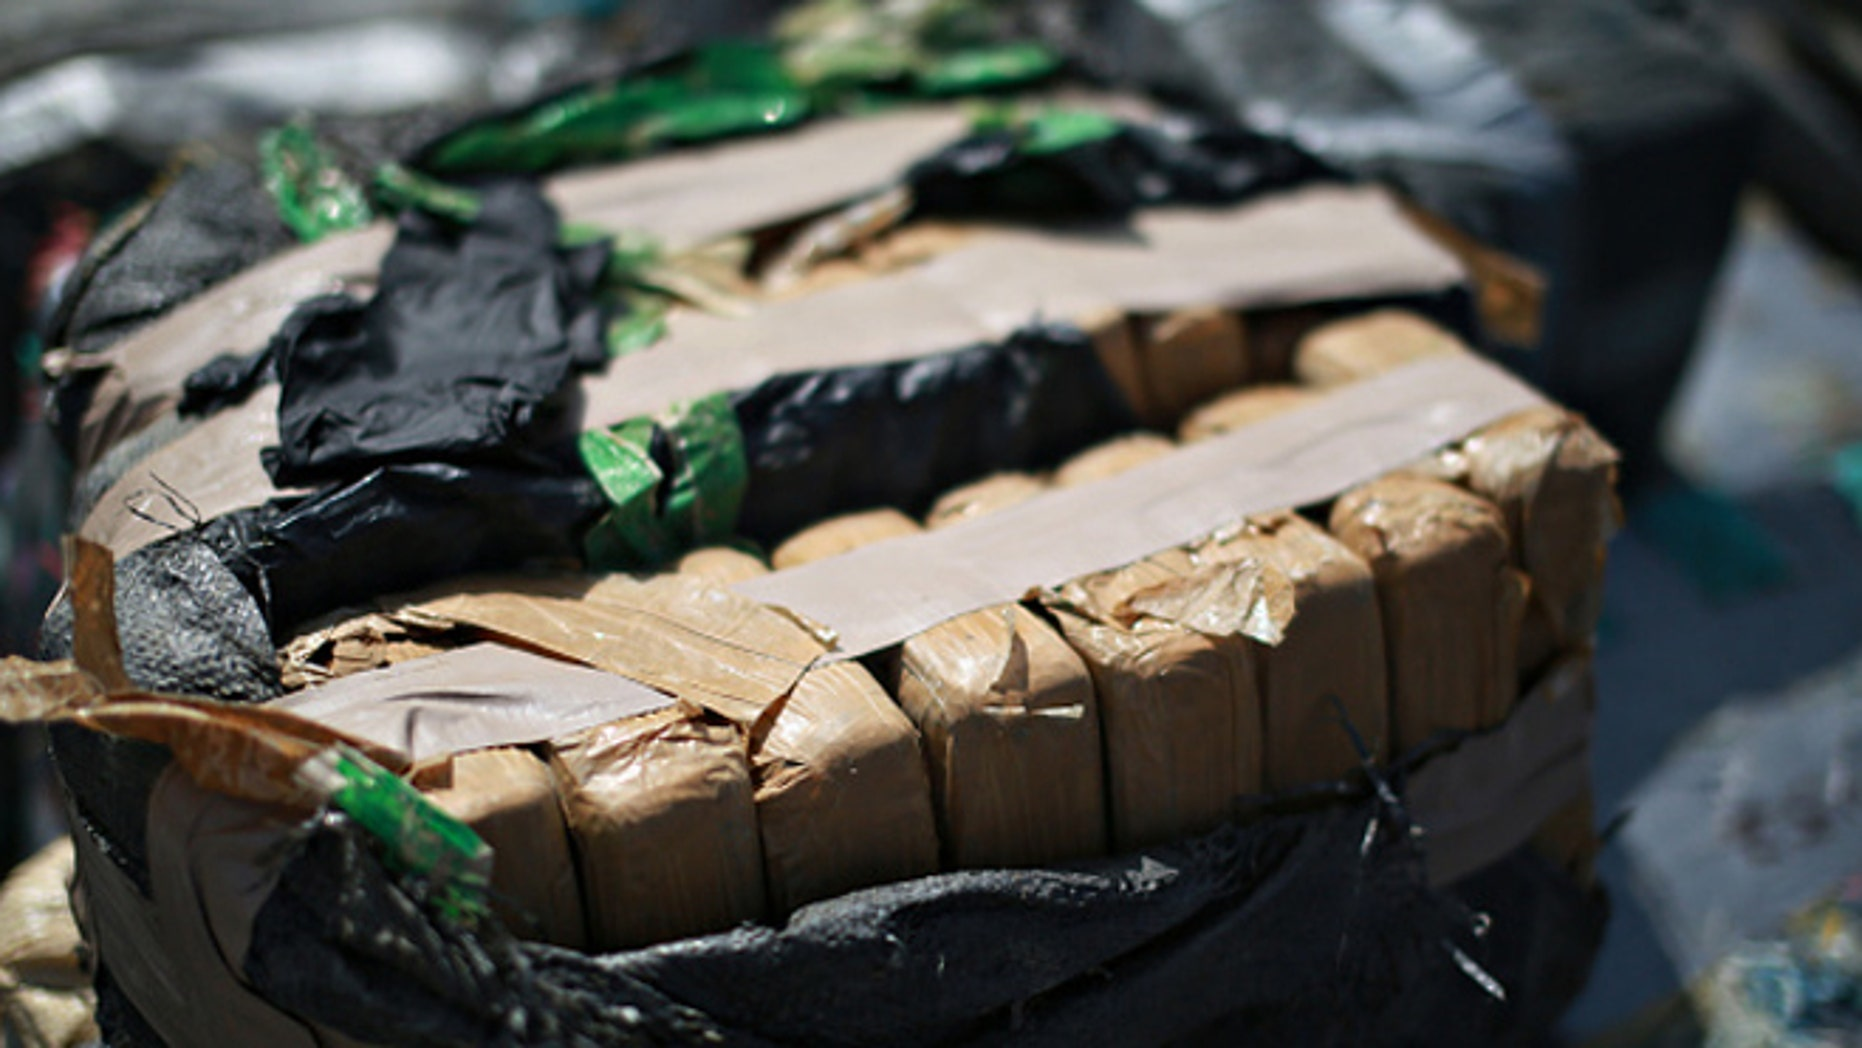 SAN DIEGO, CA - OCTOBER 6:  Piles of confiscated cocaine, seized during a 18 different interdictions off the coast of Central and South America, is prepared to be offloaded from aboard the Cutter Boutwell at Naval Base San Diego on October 6, 2014 in San Diego, California. Operation Martillo offloaded more than 28,000 pounds of cocaine with a value of $423 million dollars wholesale.  (Photo by Sandy Huffaker/Getty Images)